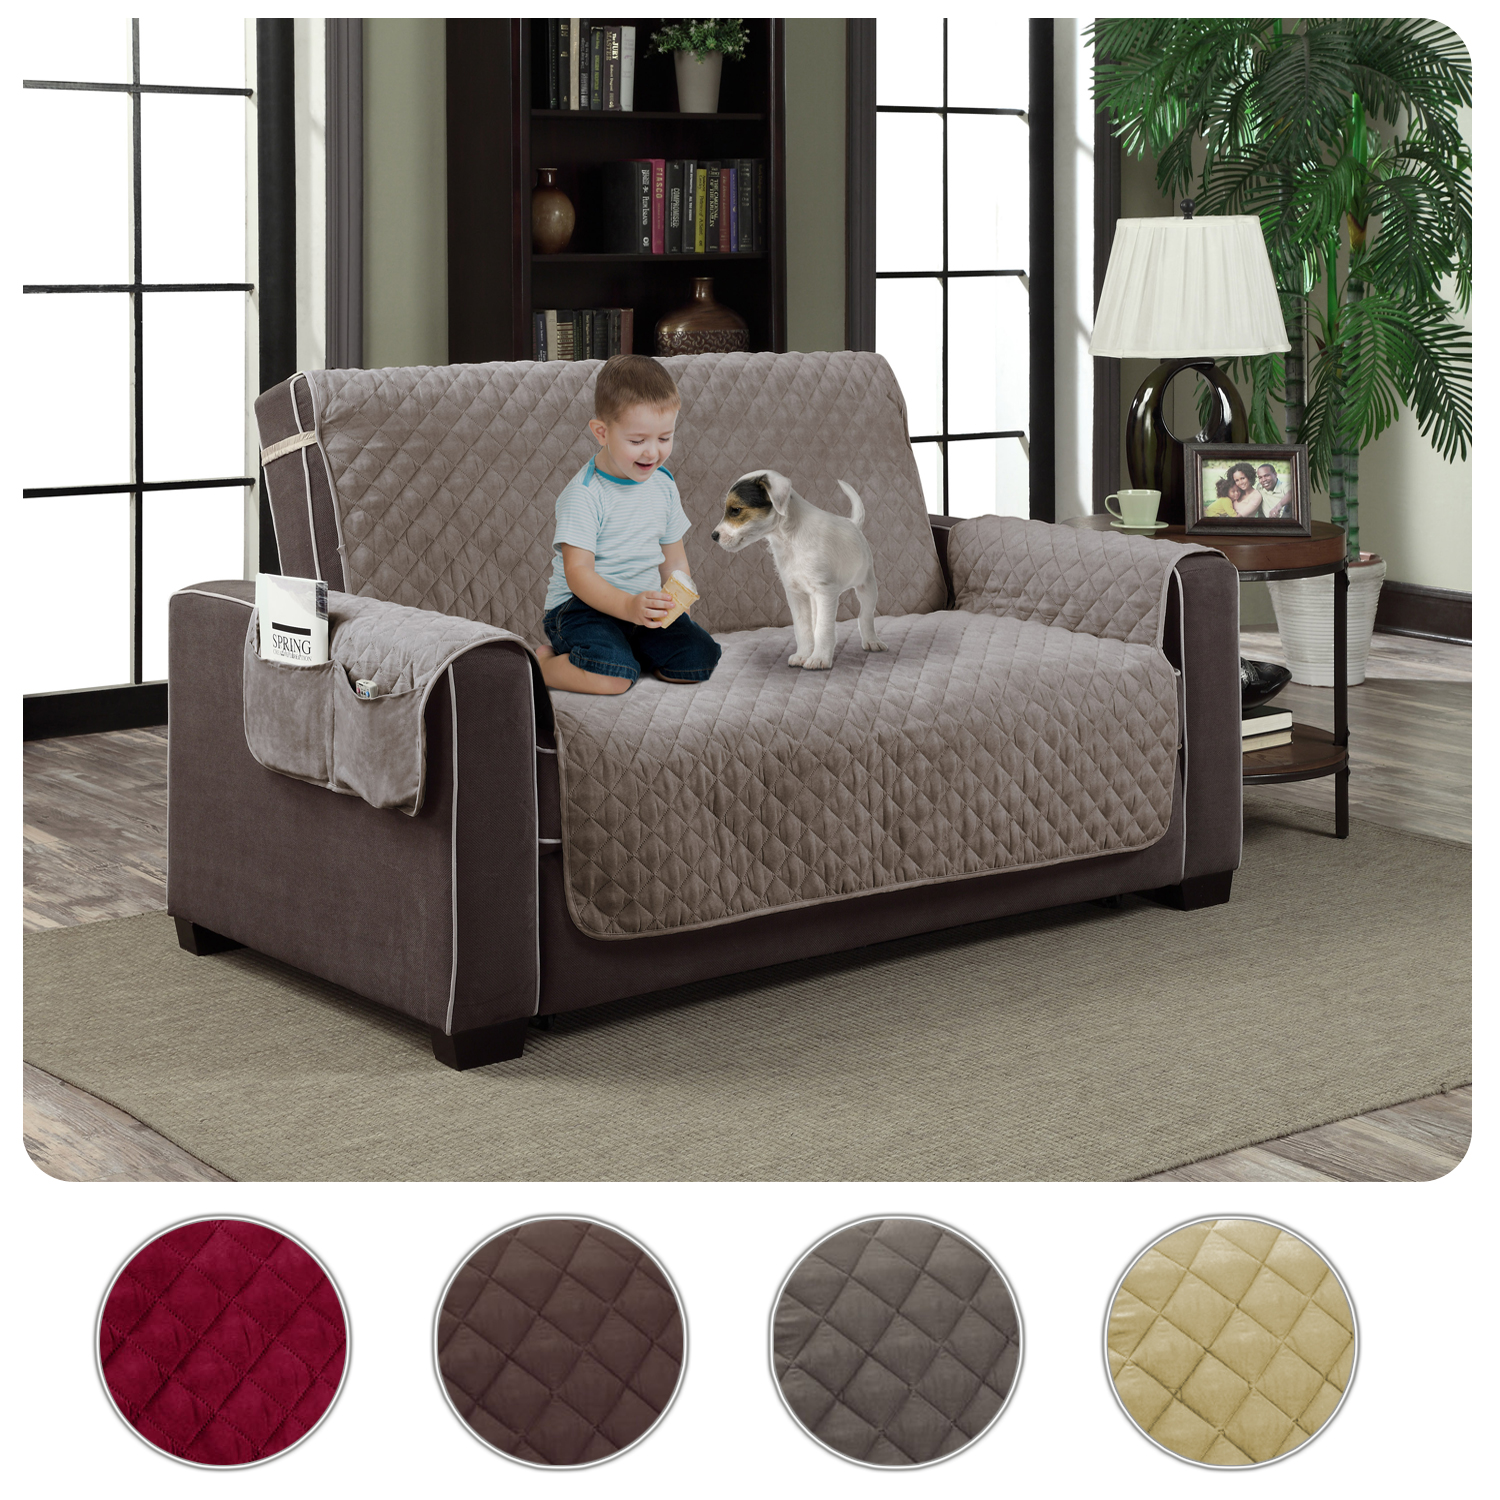 Marvelous Details About Slipcover Microfiber Reversible Pet Dog Couch Protector Cover Love Seat Gmtry Best Dining Table And Chair Ideas Images Gmtryco